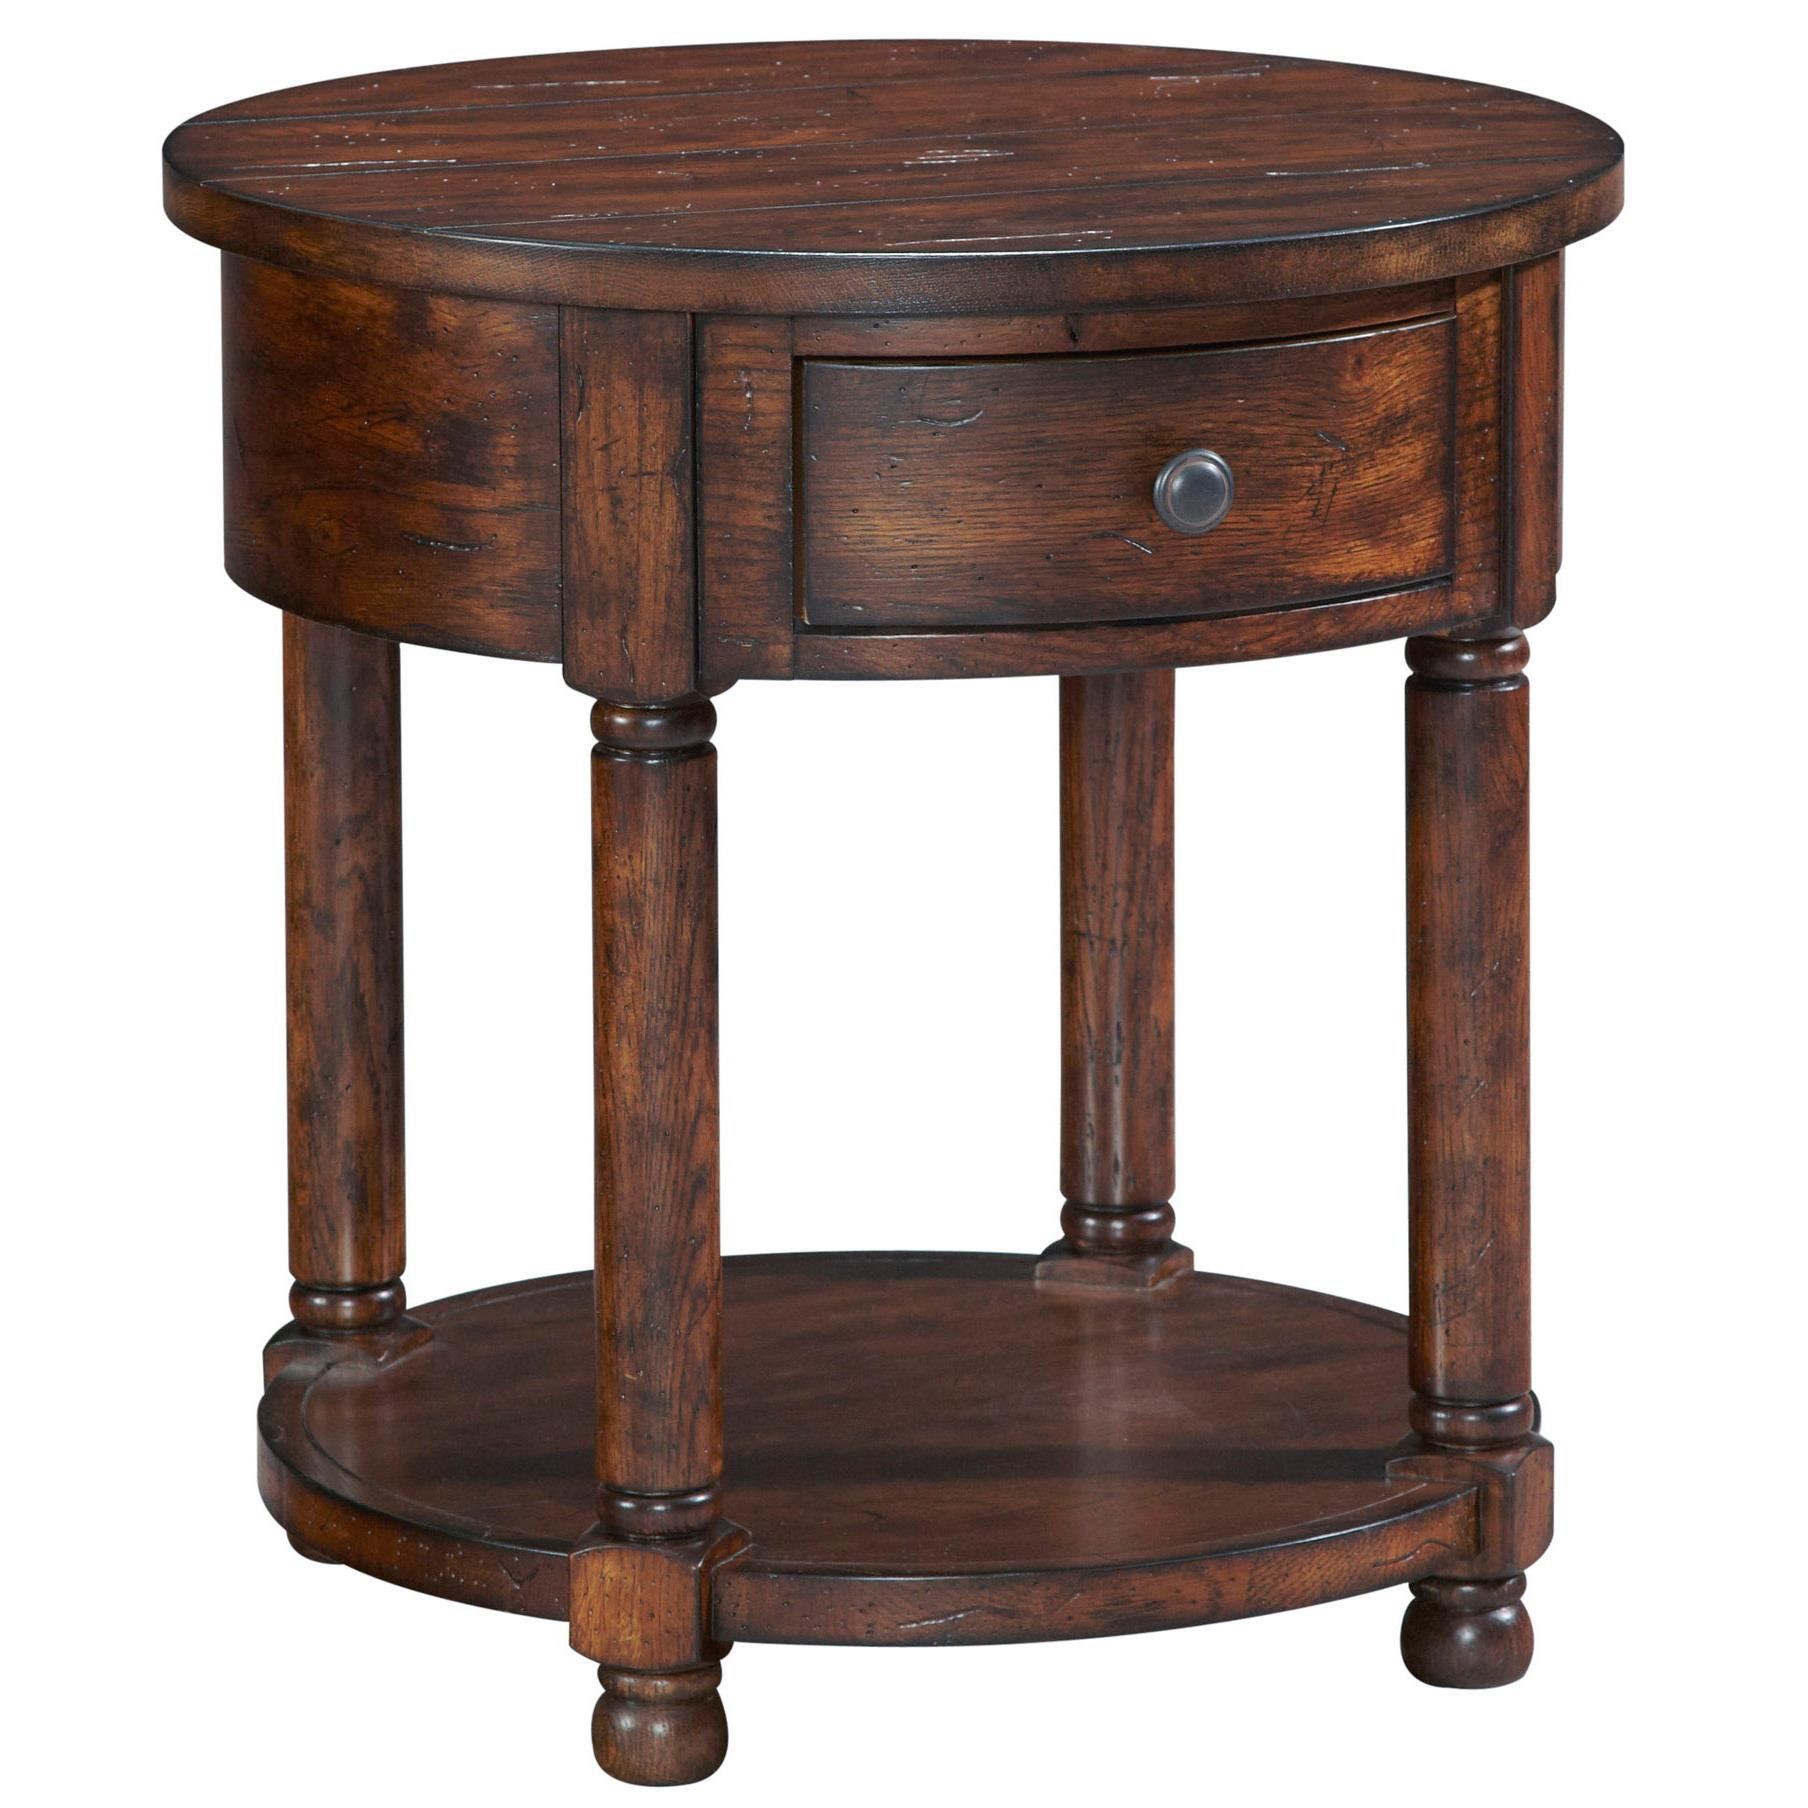 Broyhill furniture attic rustic round end table with shelf for Accent furnitureable